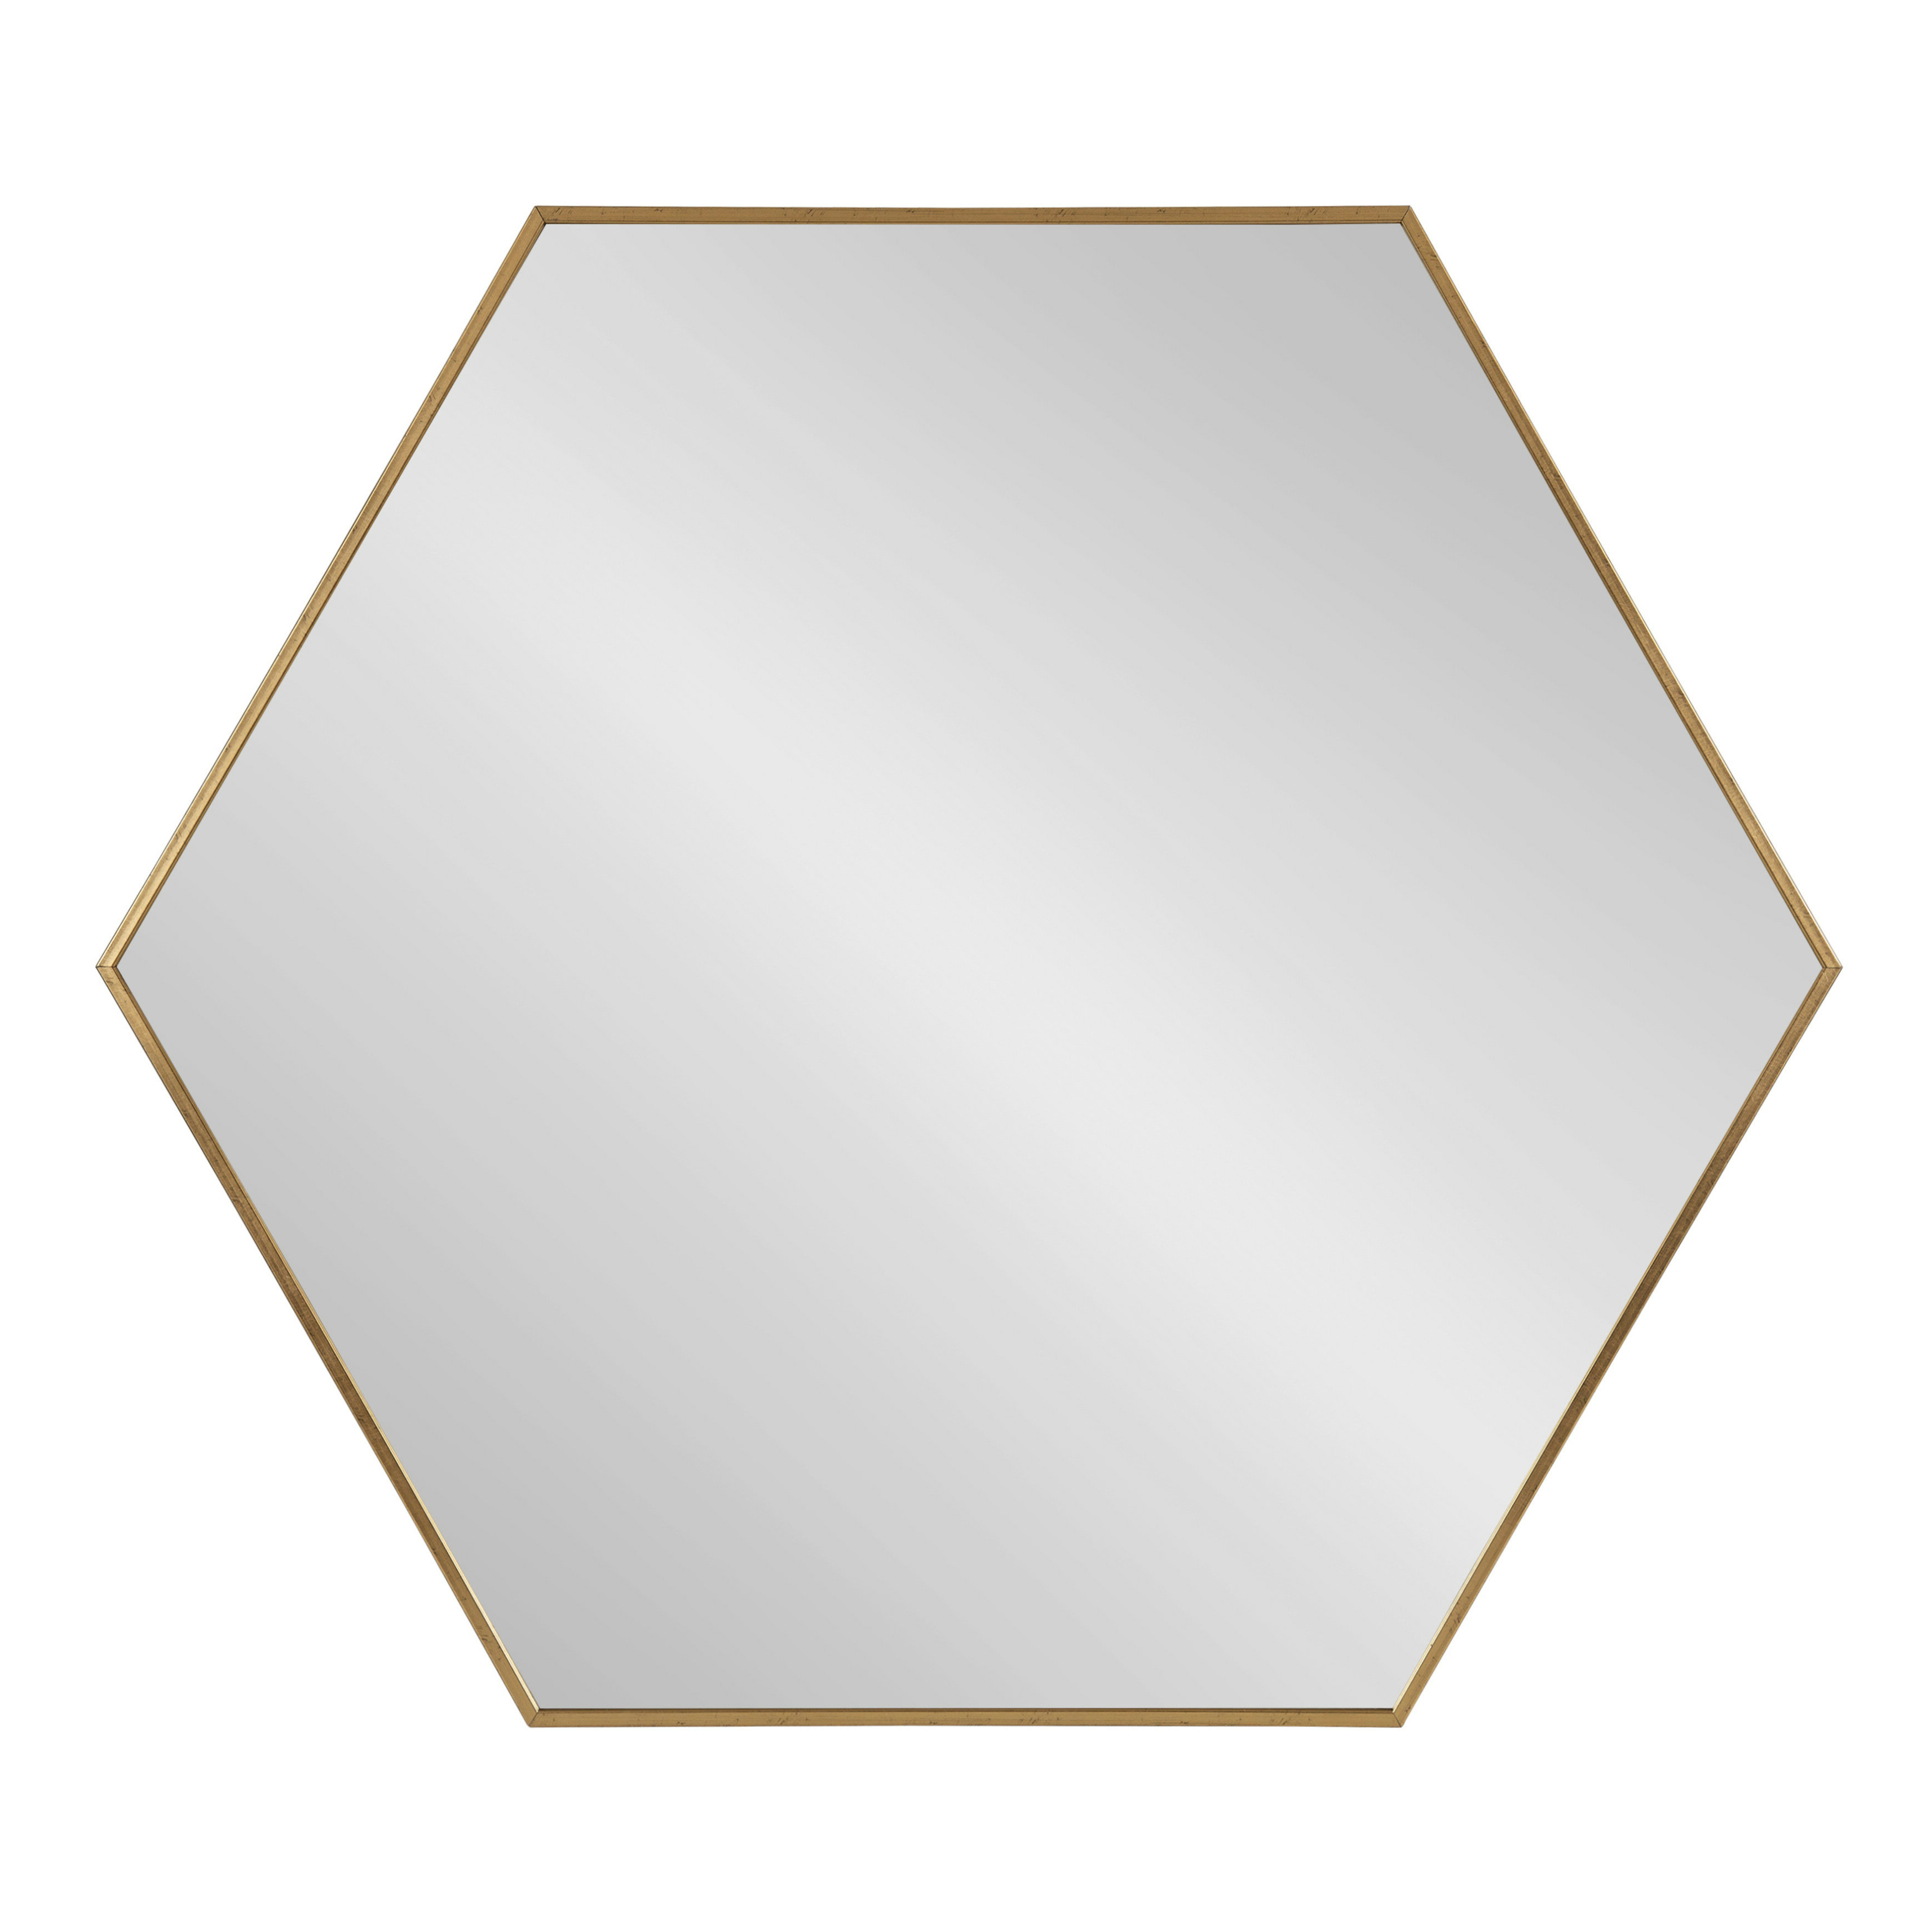 Gia Hexagon Accent Mirrors Intended For Most Popular Bothell 6 Sided Hexagon Modern Beveled Accent Mirror (View 7 of 20)